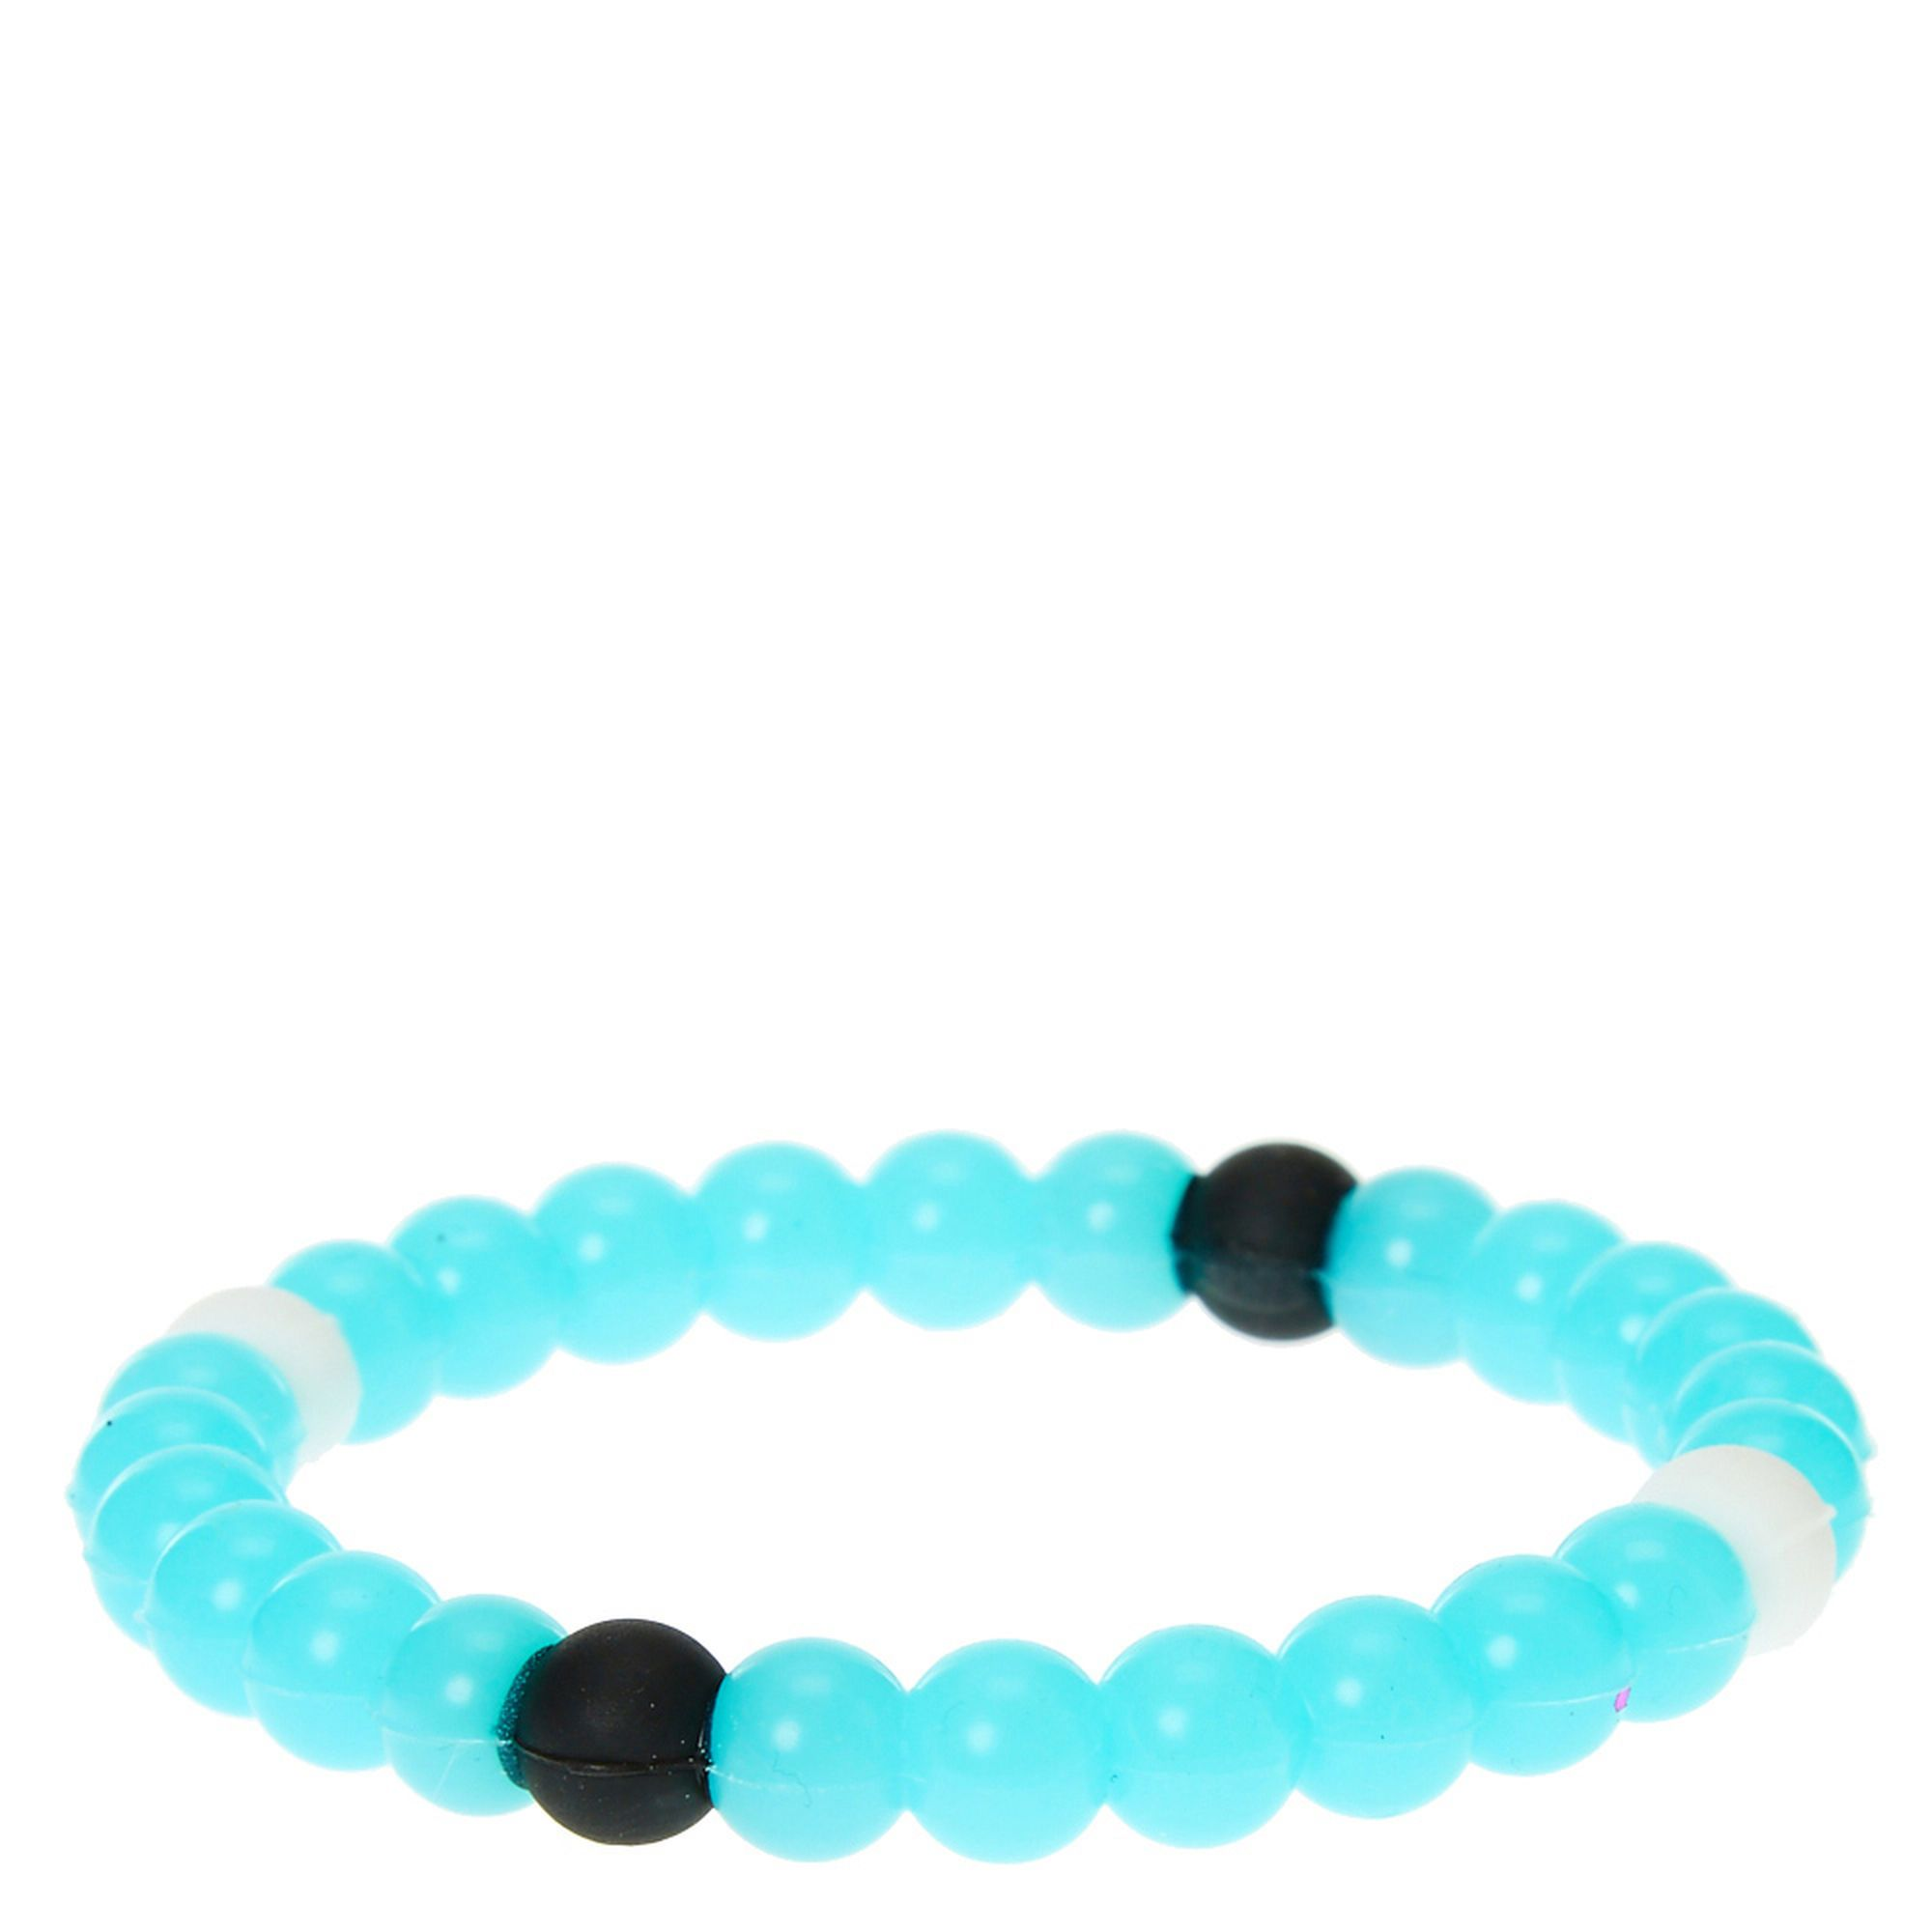 Claire's Glow In The Dark Fortune Stretch Bracelet